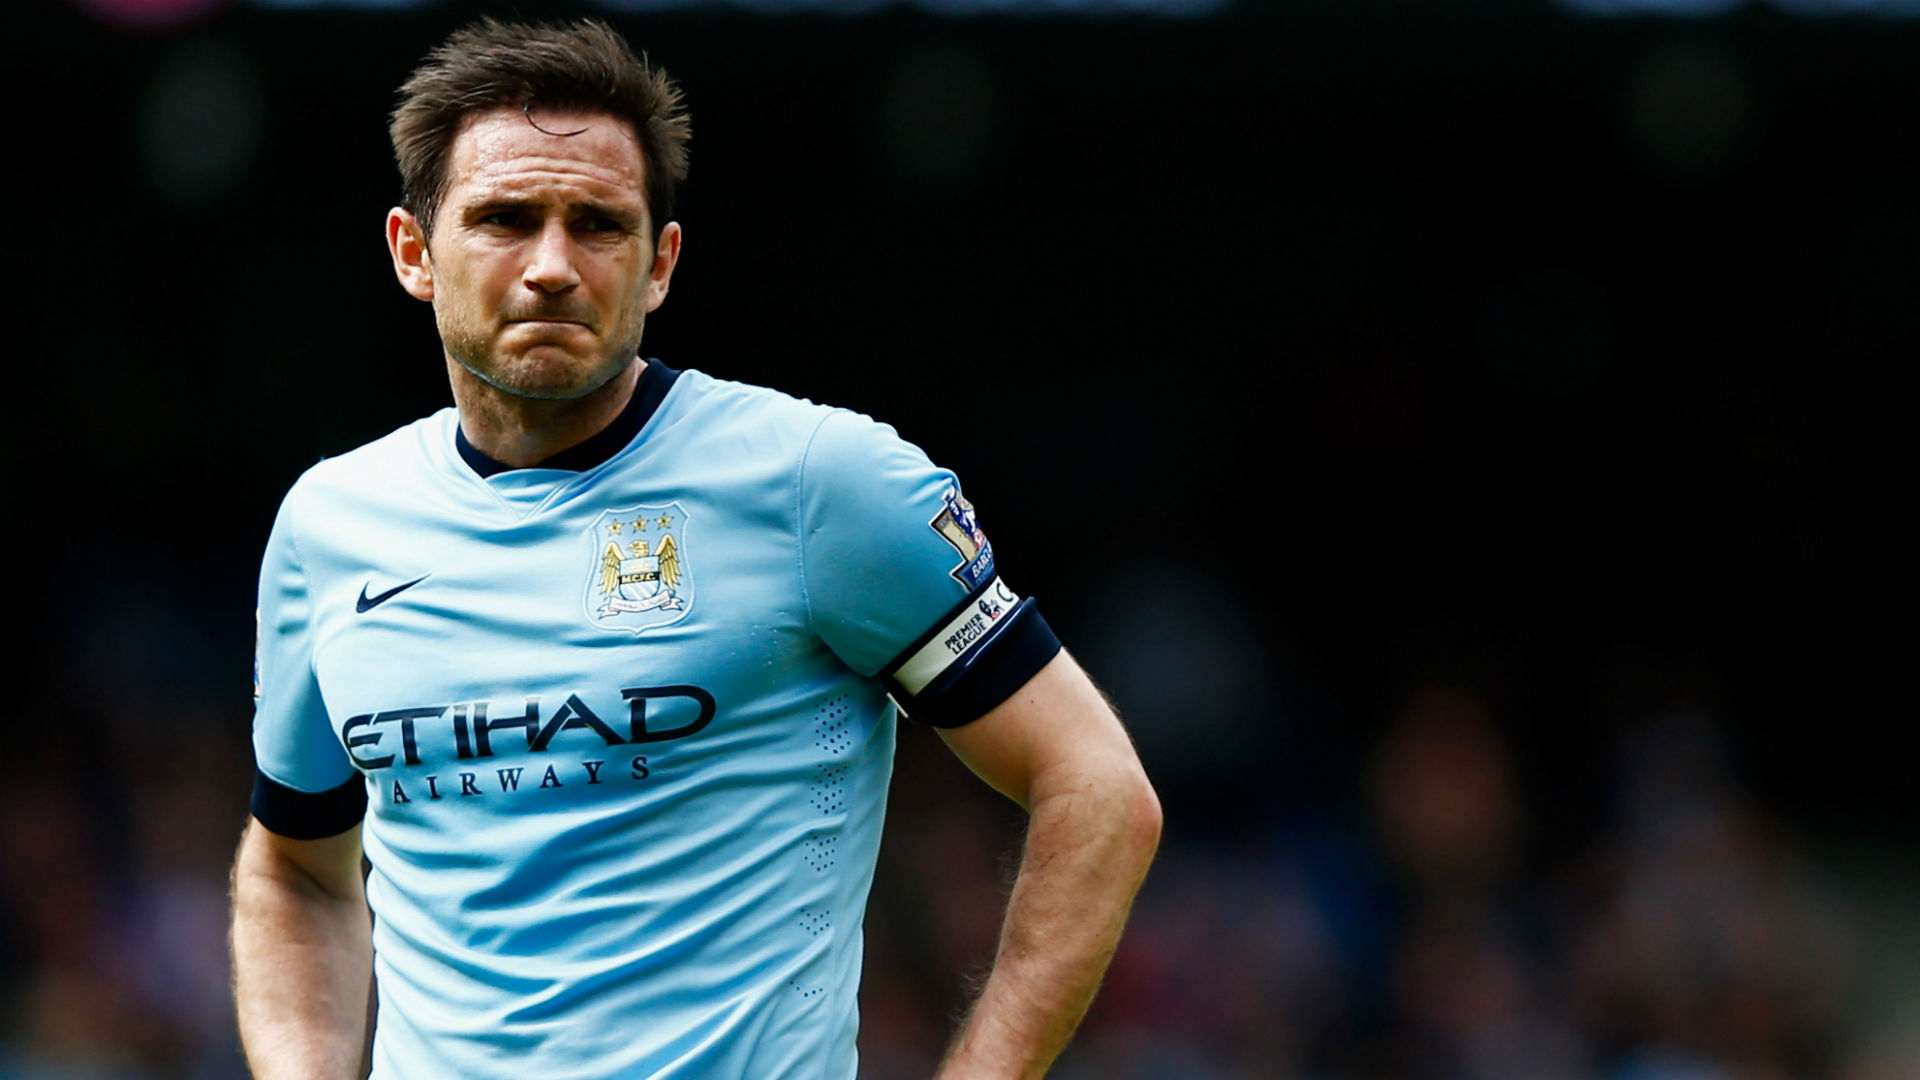 Frank Lampard welcomes 'perfect challenge' of joining NYCFC